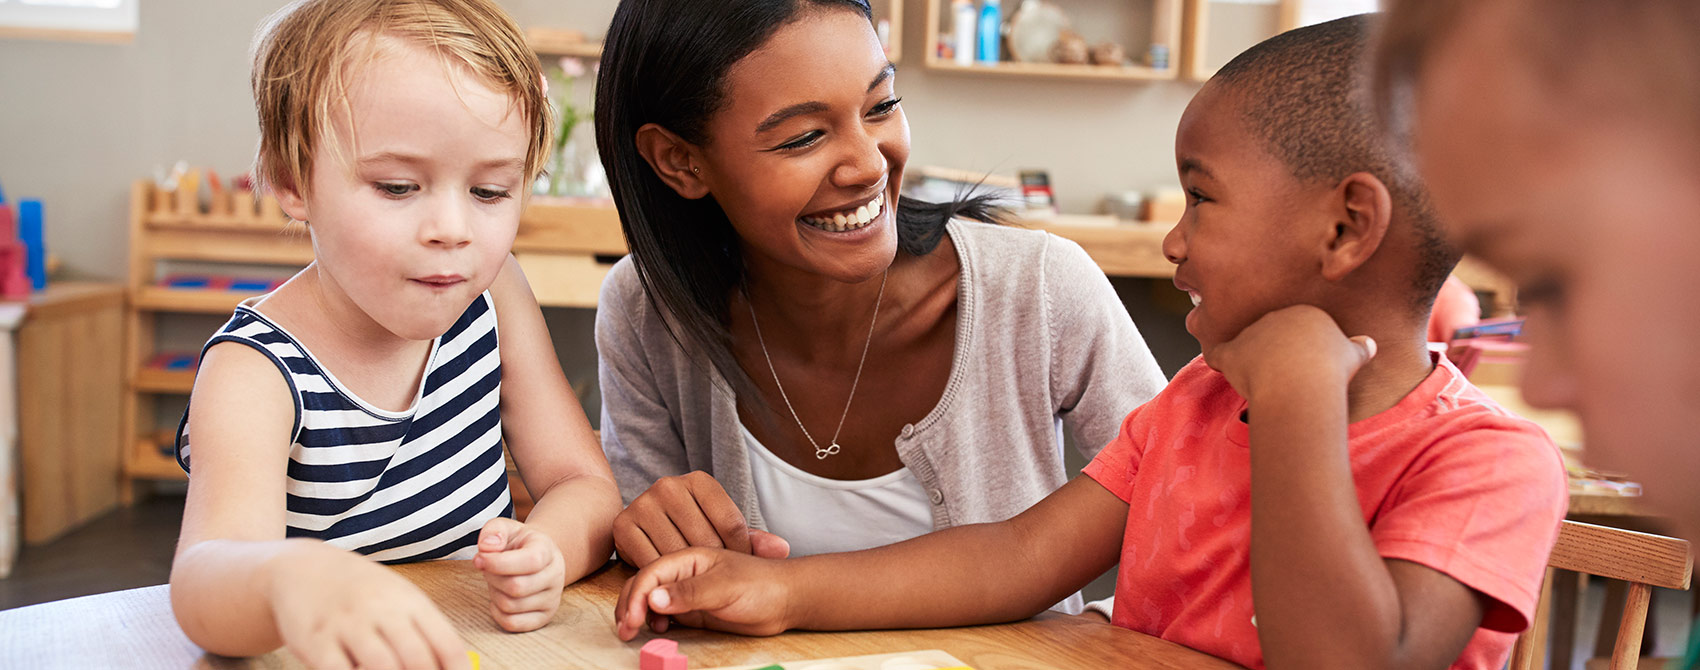 A Montessori teacher is smiling at her young students who are collaborating.